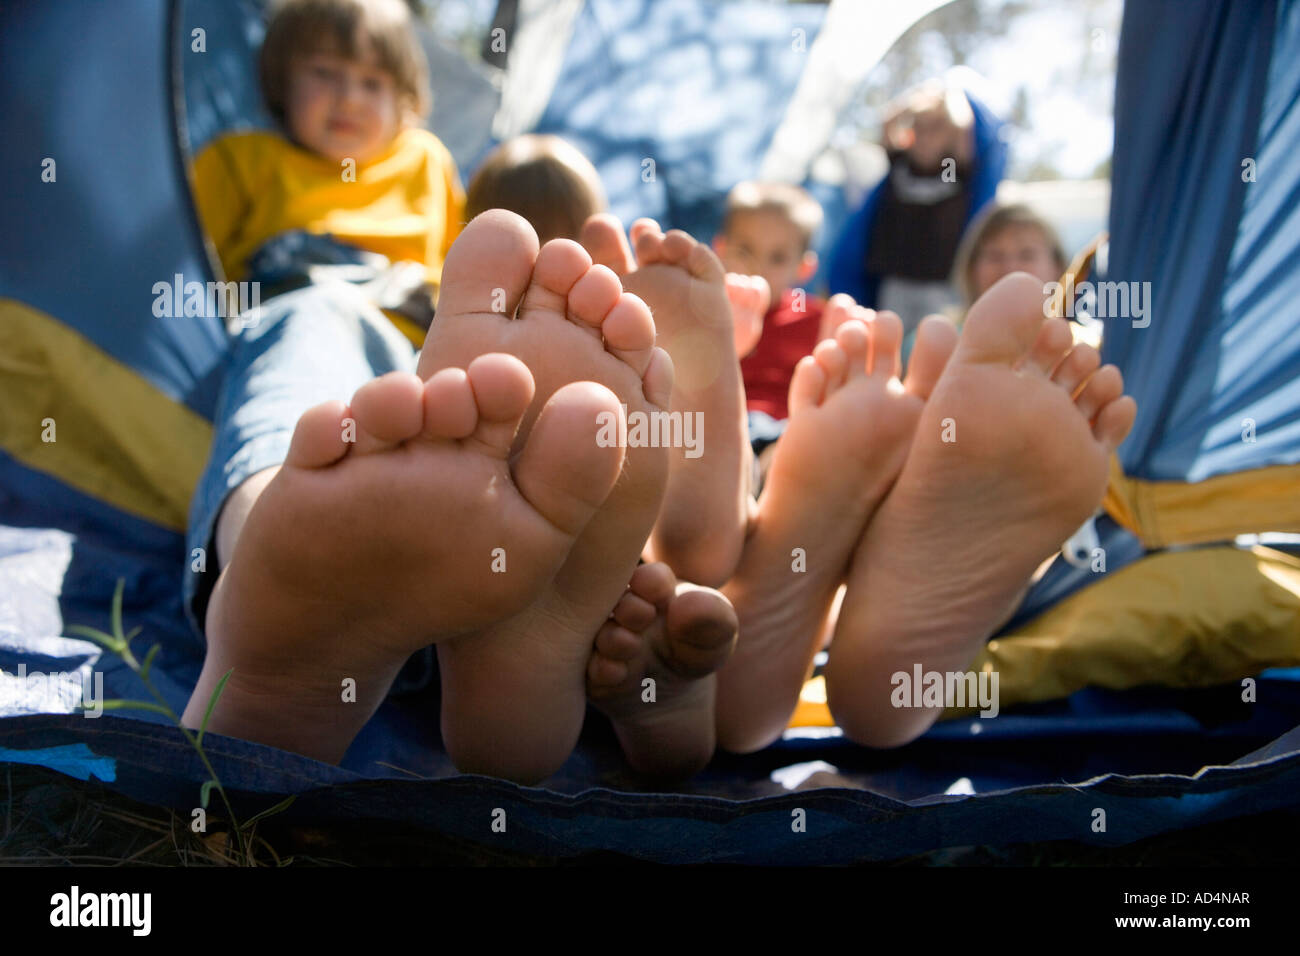 View of children's feet poking out of a tent - Stock Image